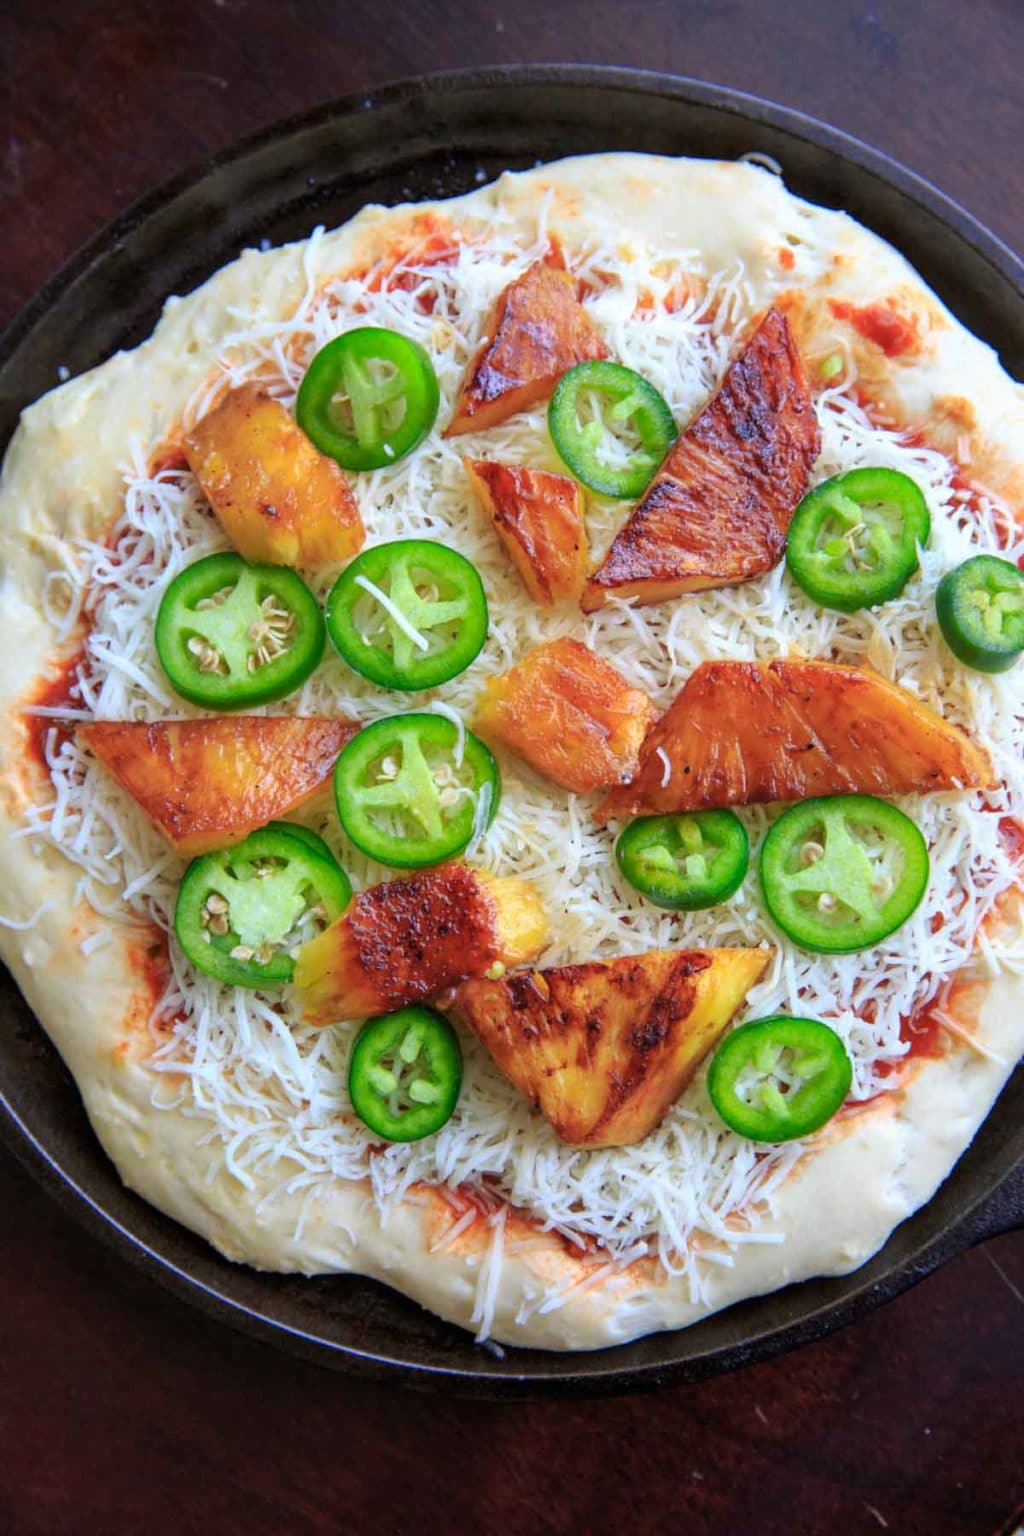 Grilled pineapple and jalapeno pizza, before baking.